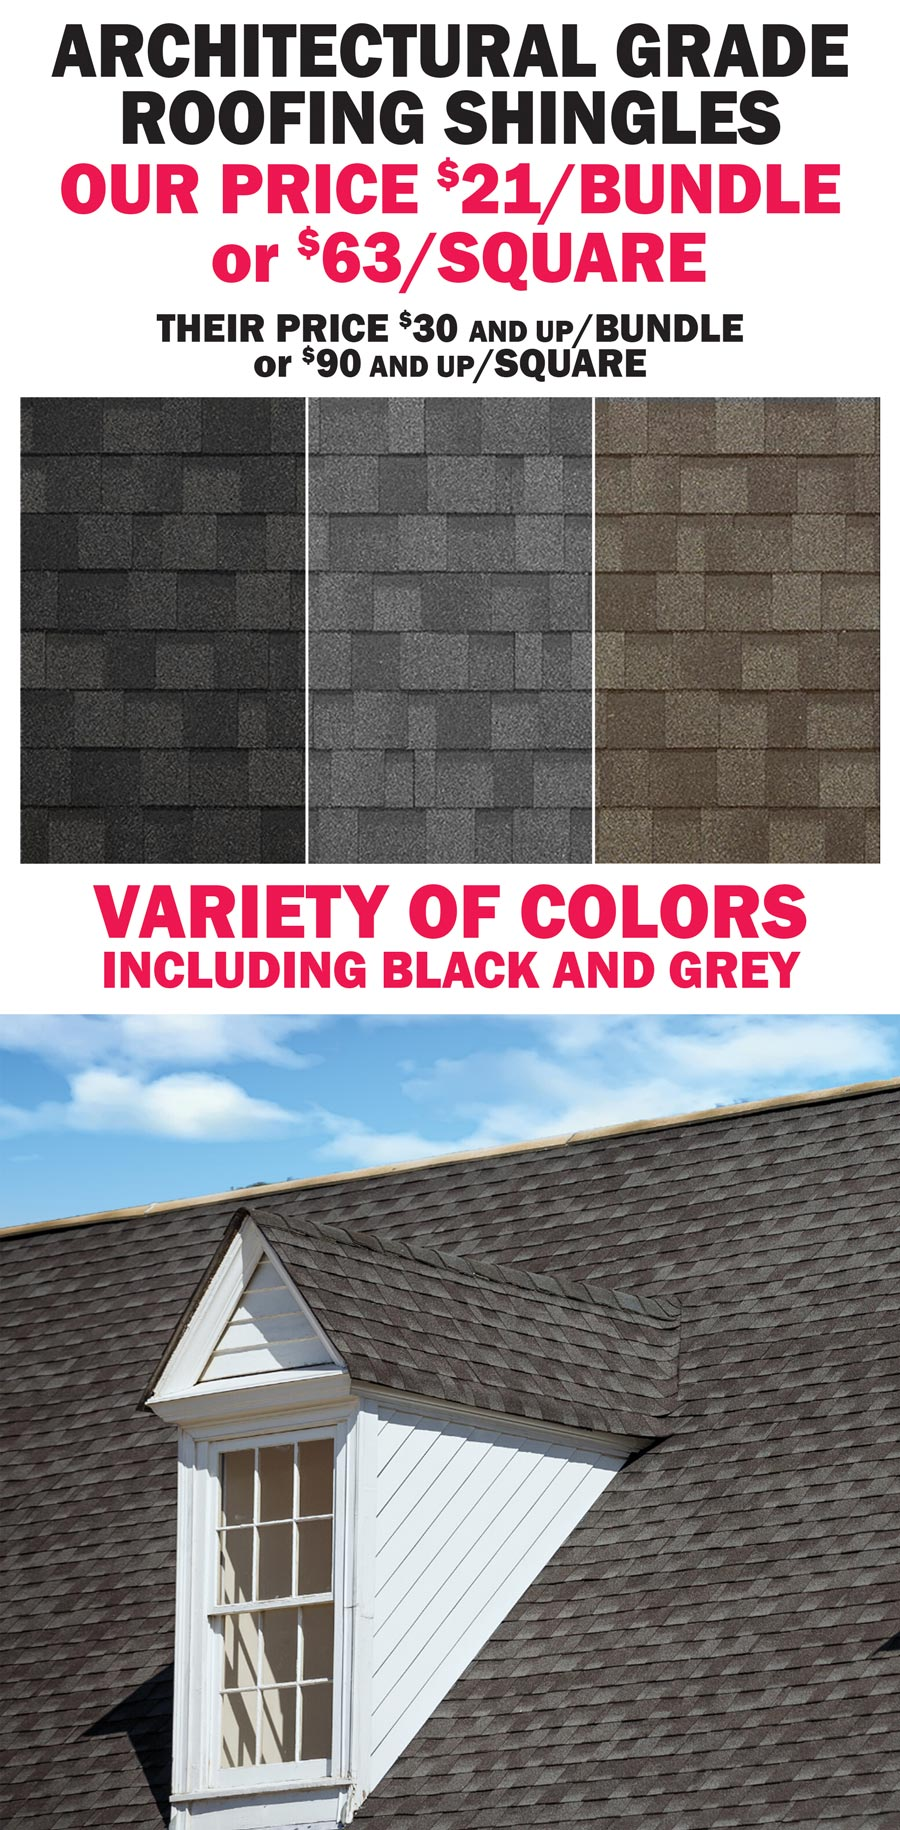 Architectural Grade Roofing Shingles $21 a bundle or $63 a square